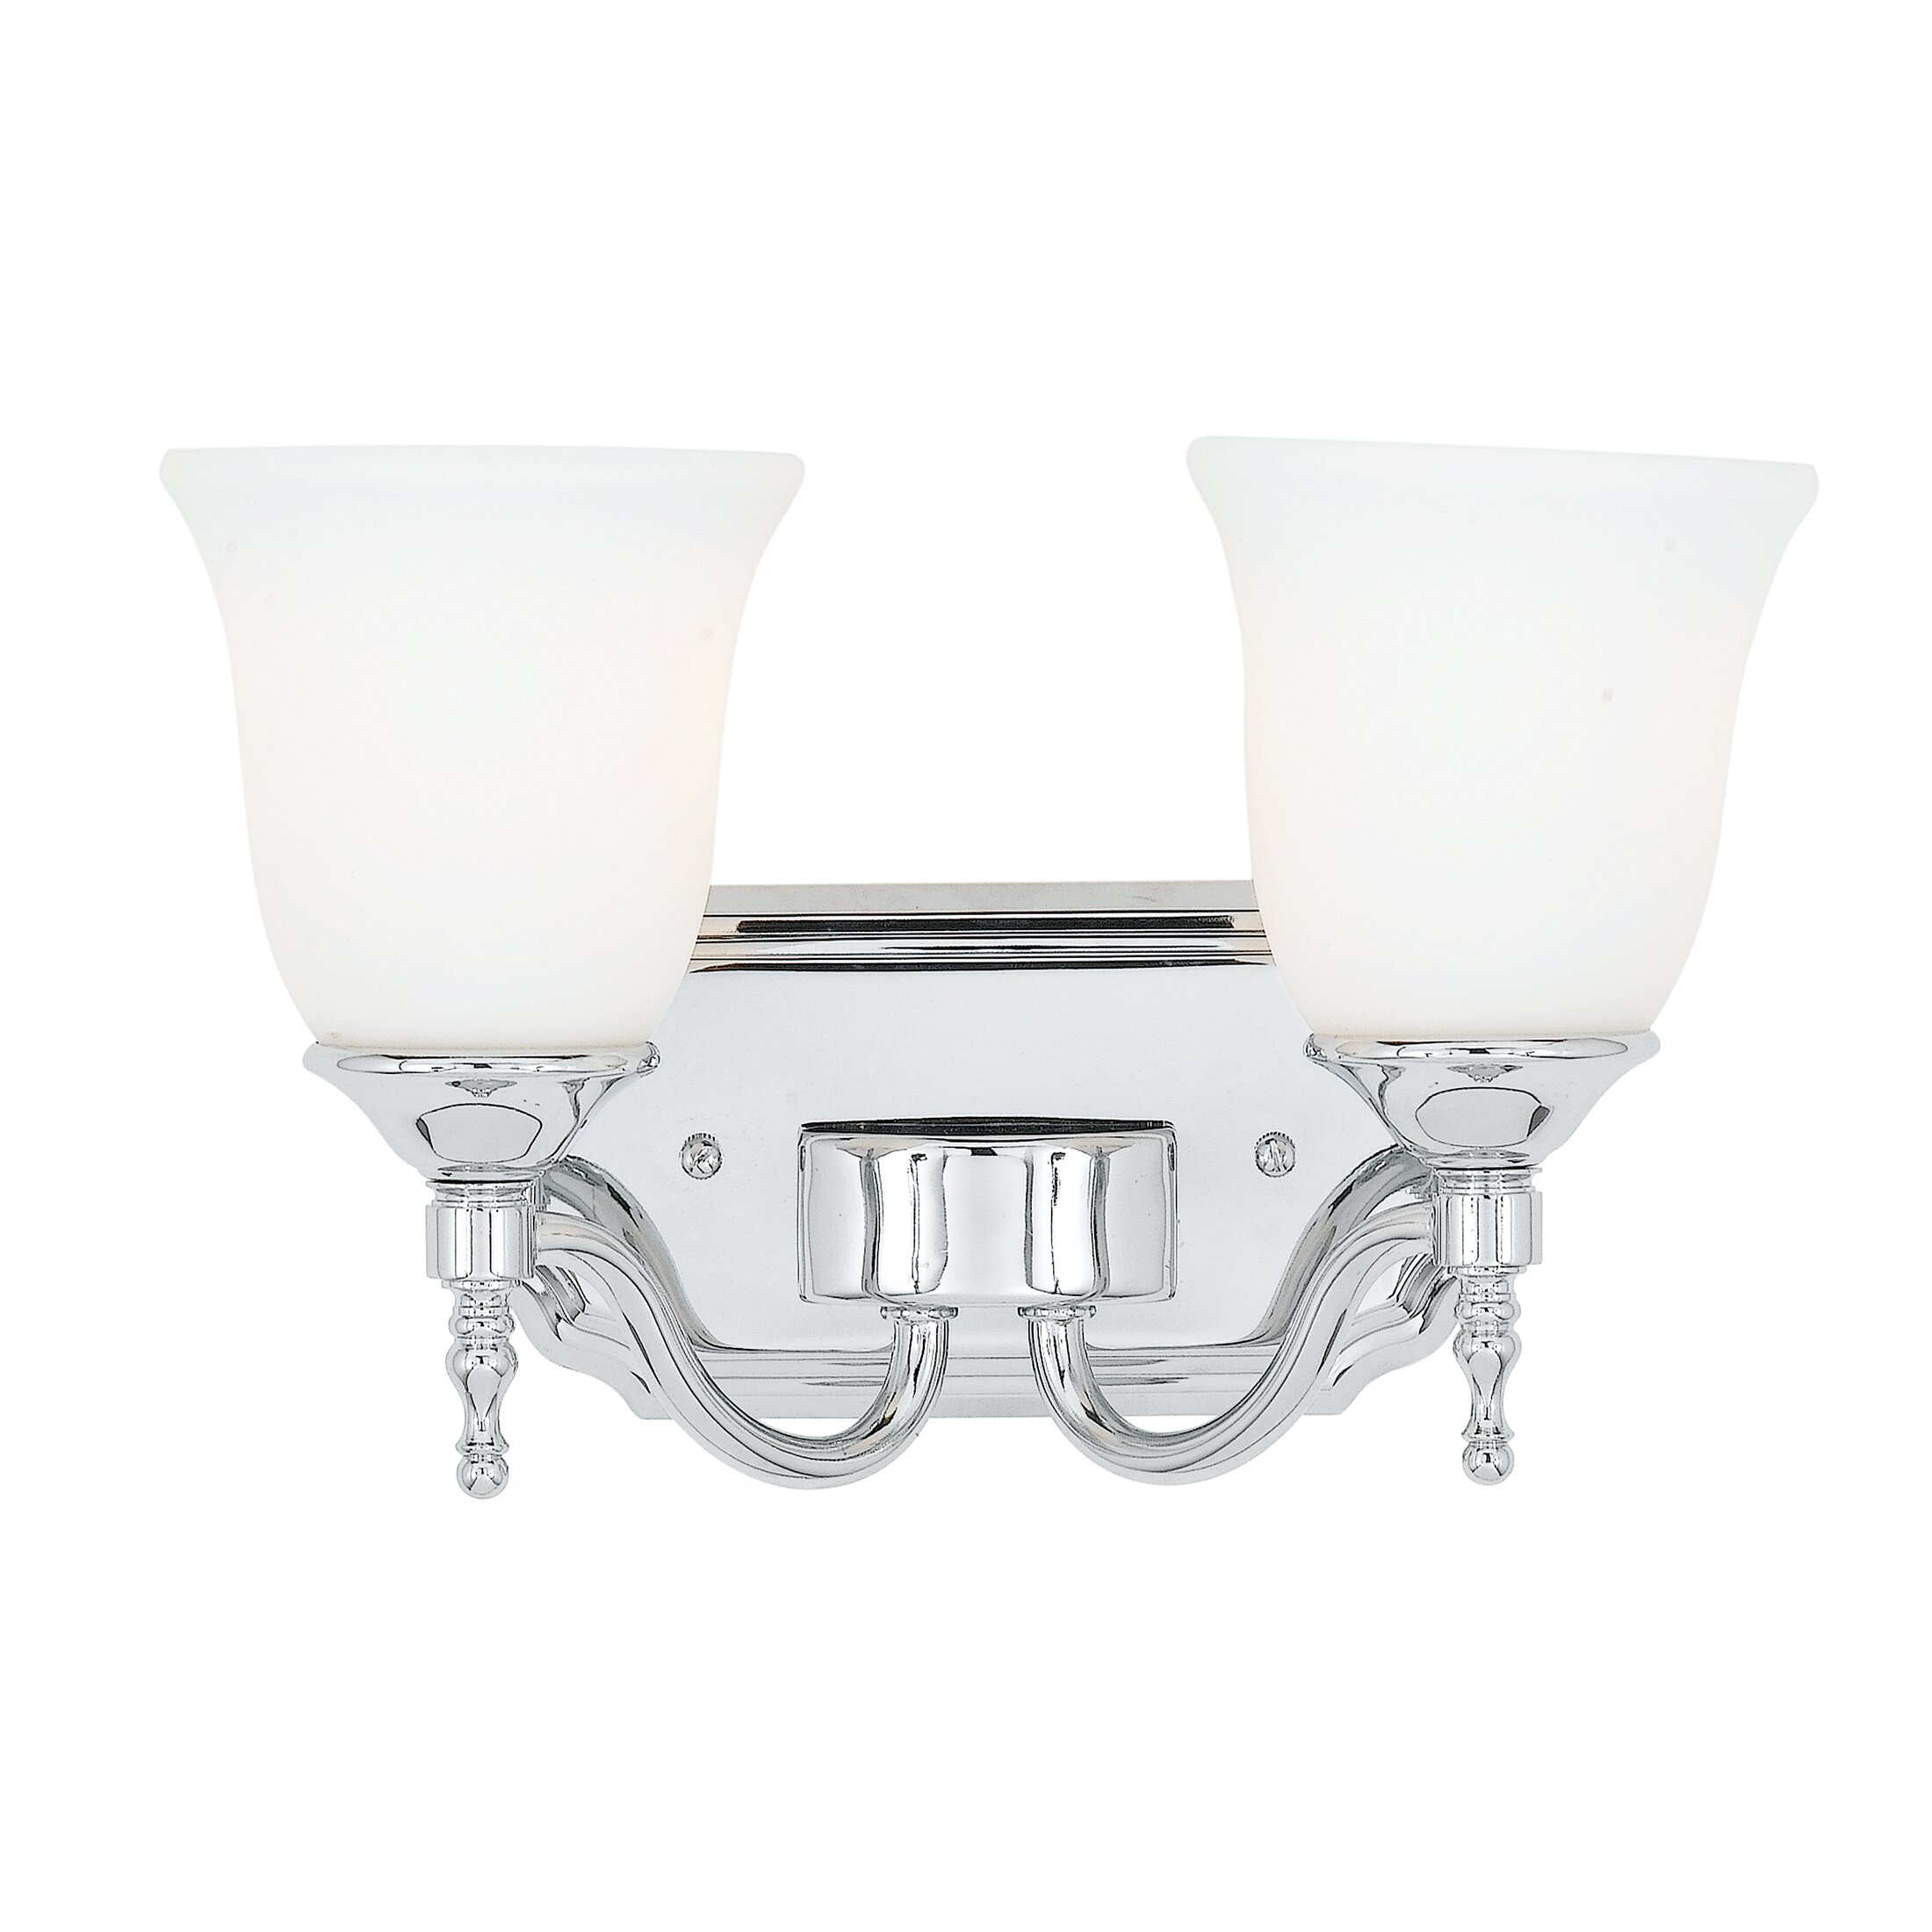 Quoizel Tritan 2 Light Bath Vanity Light Reviews Wayfair